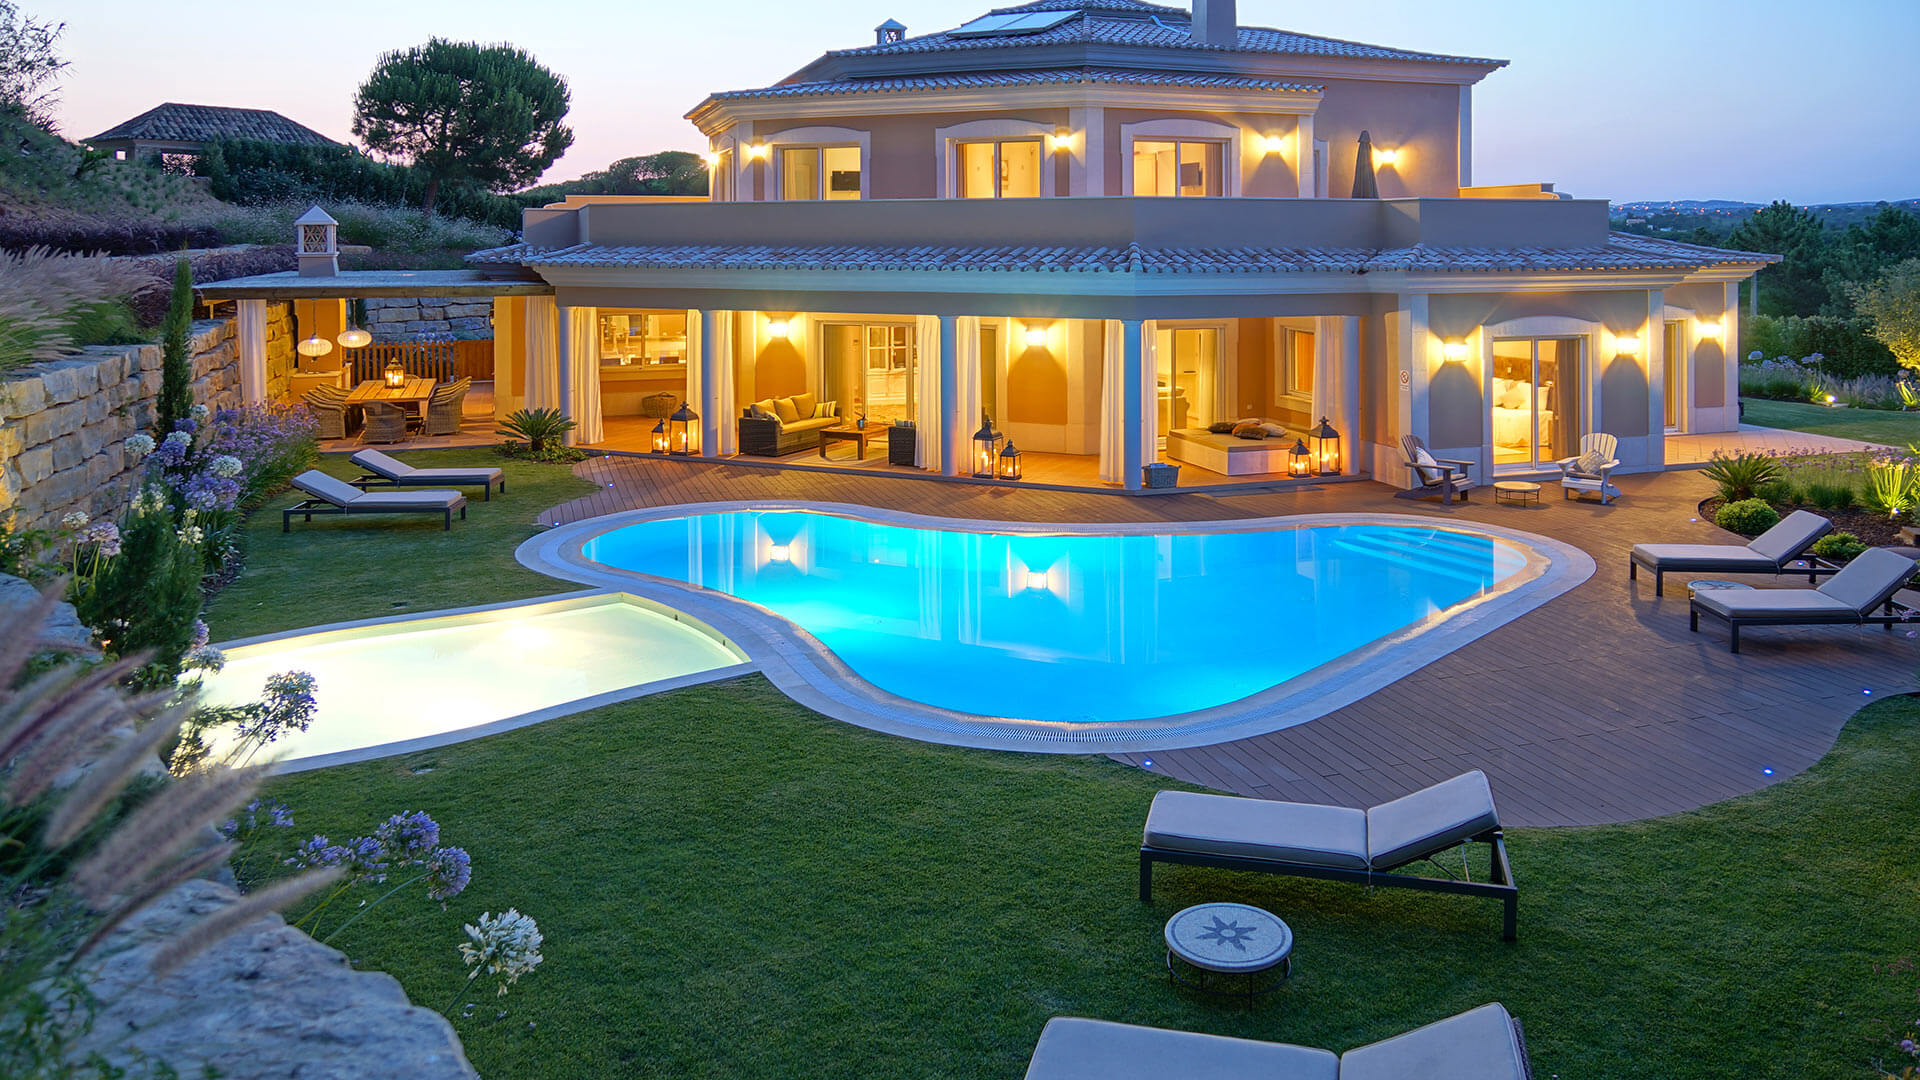 Villa Villa Onix, Rental in Algarve